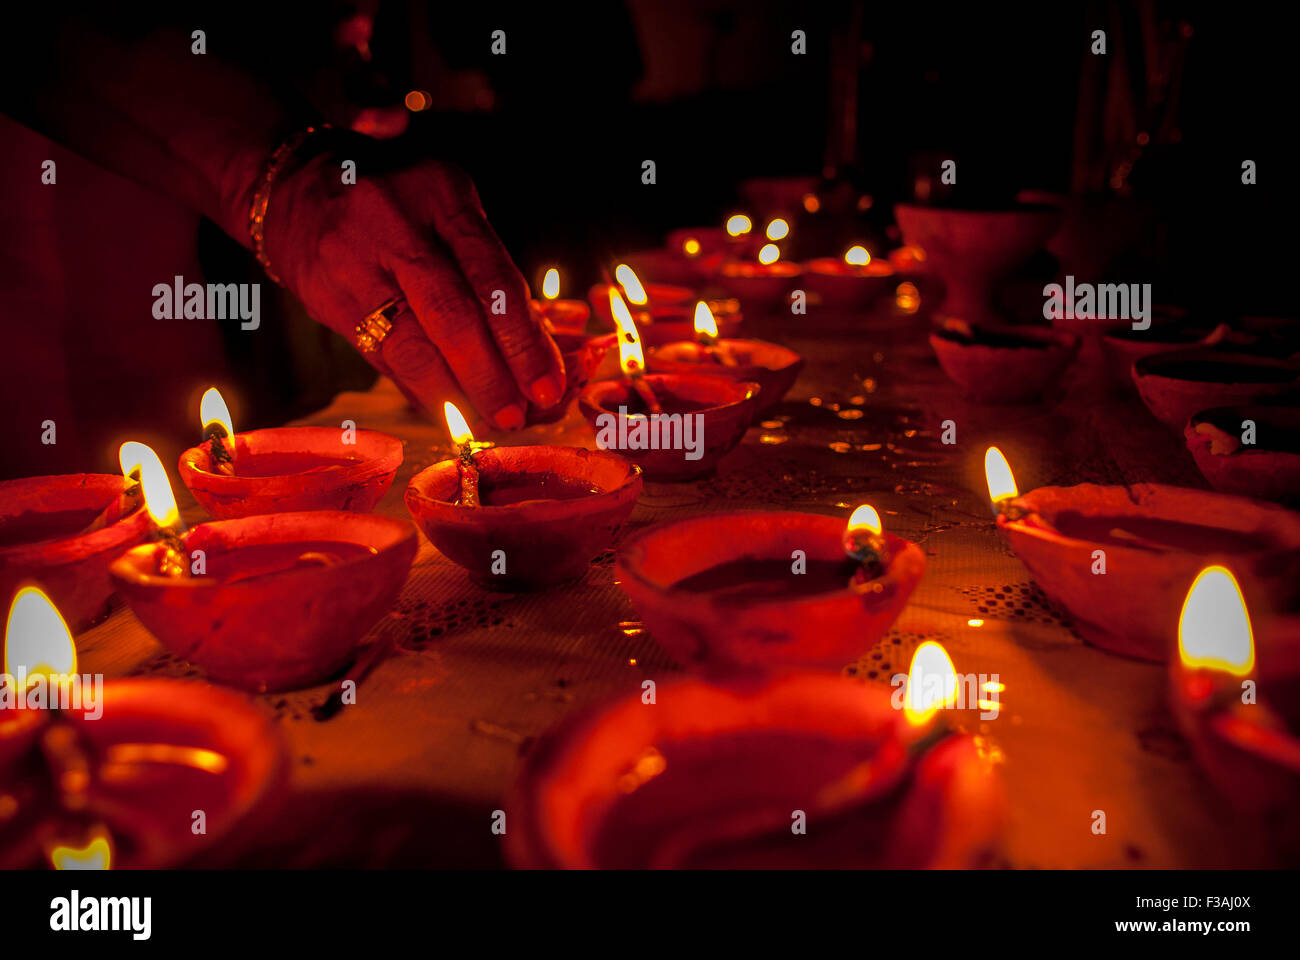 Lightening deyas for Diwali. - Stock Image